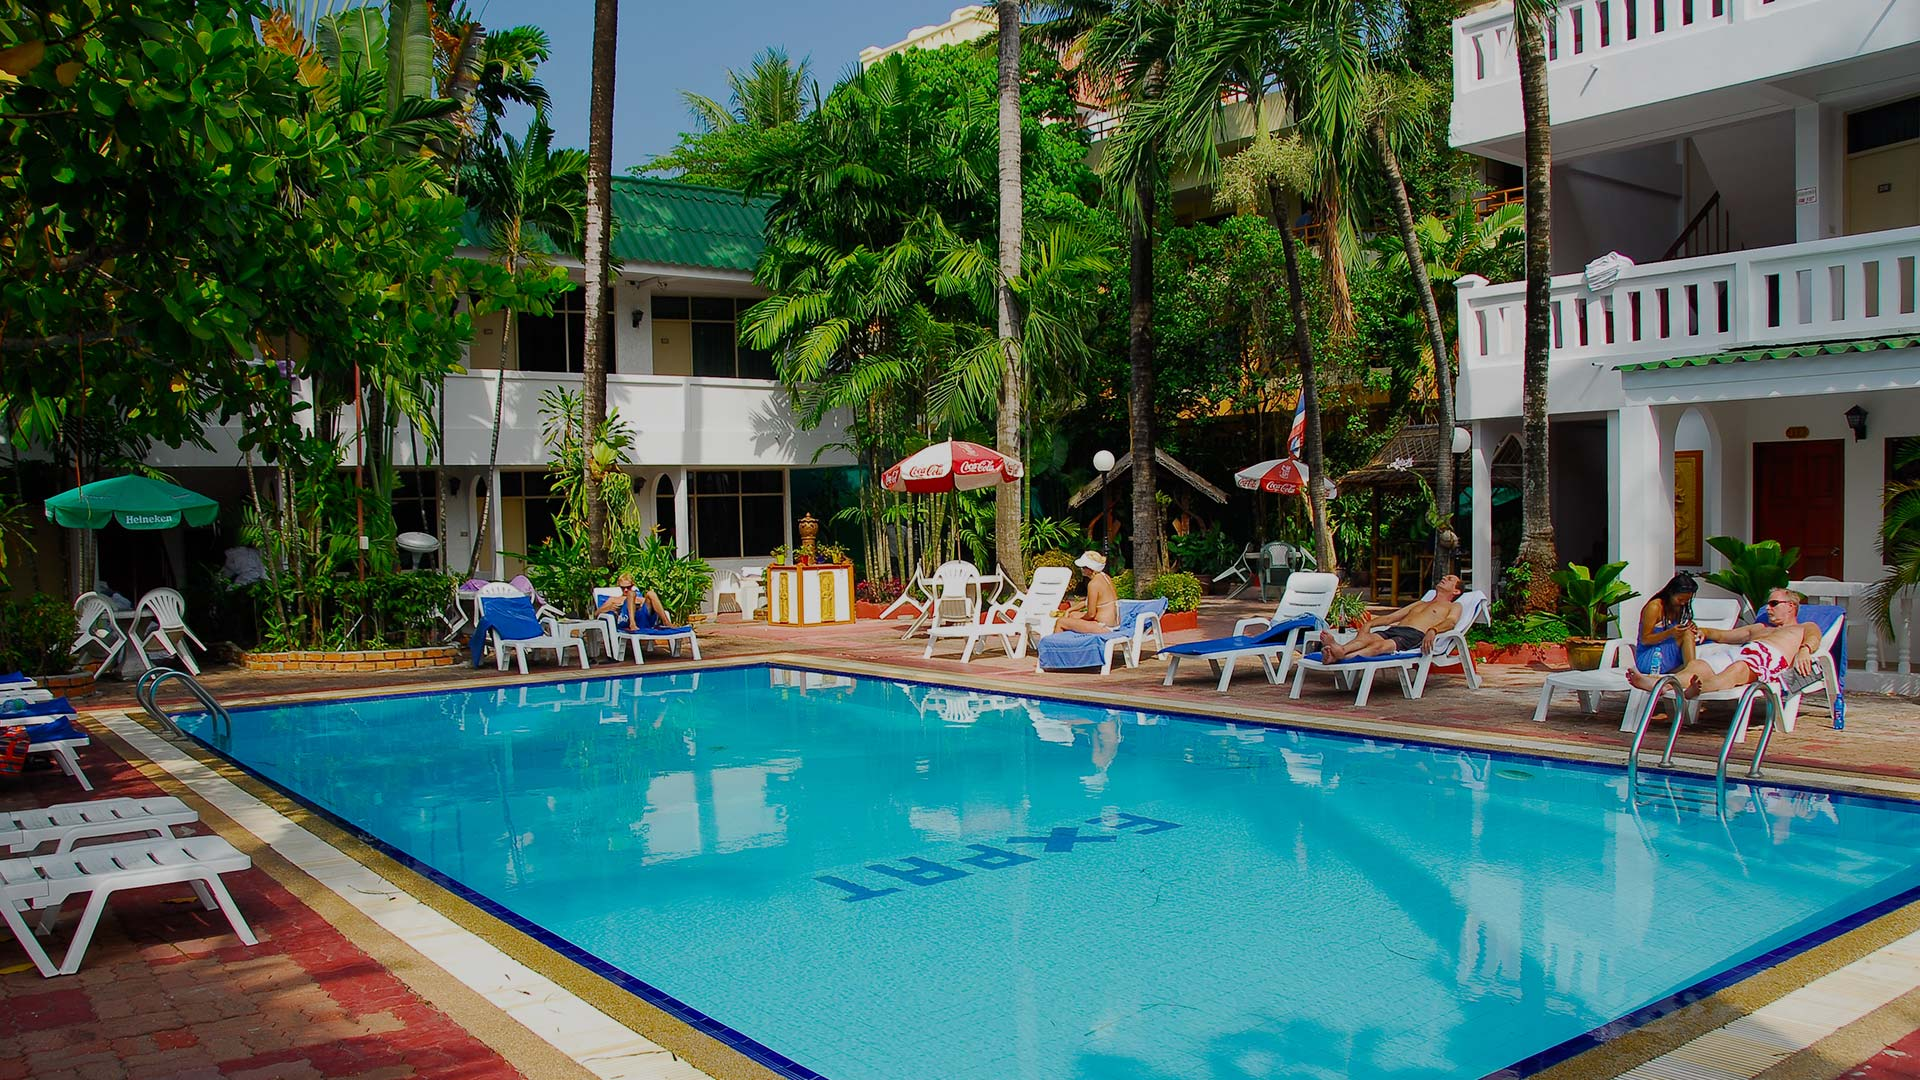 The Expat Hotel in Patong Phuket